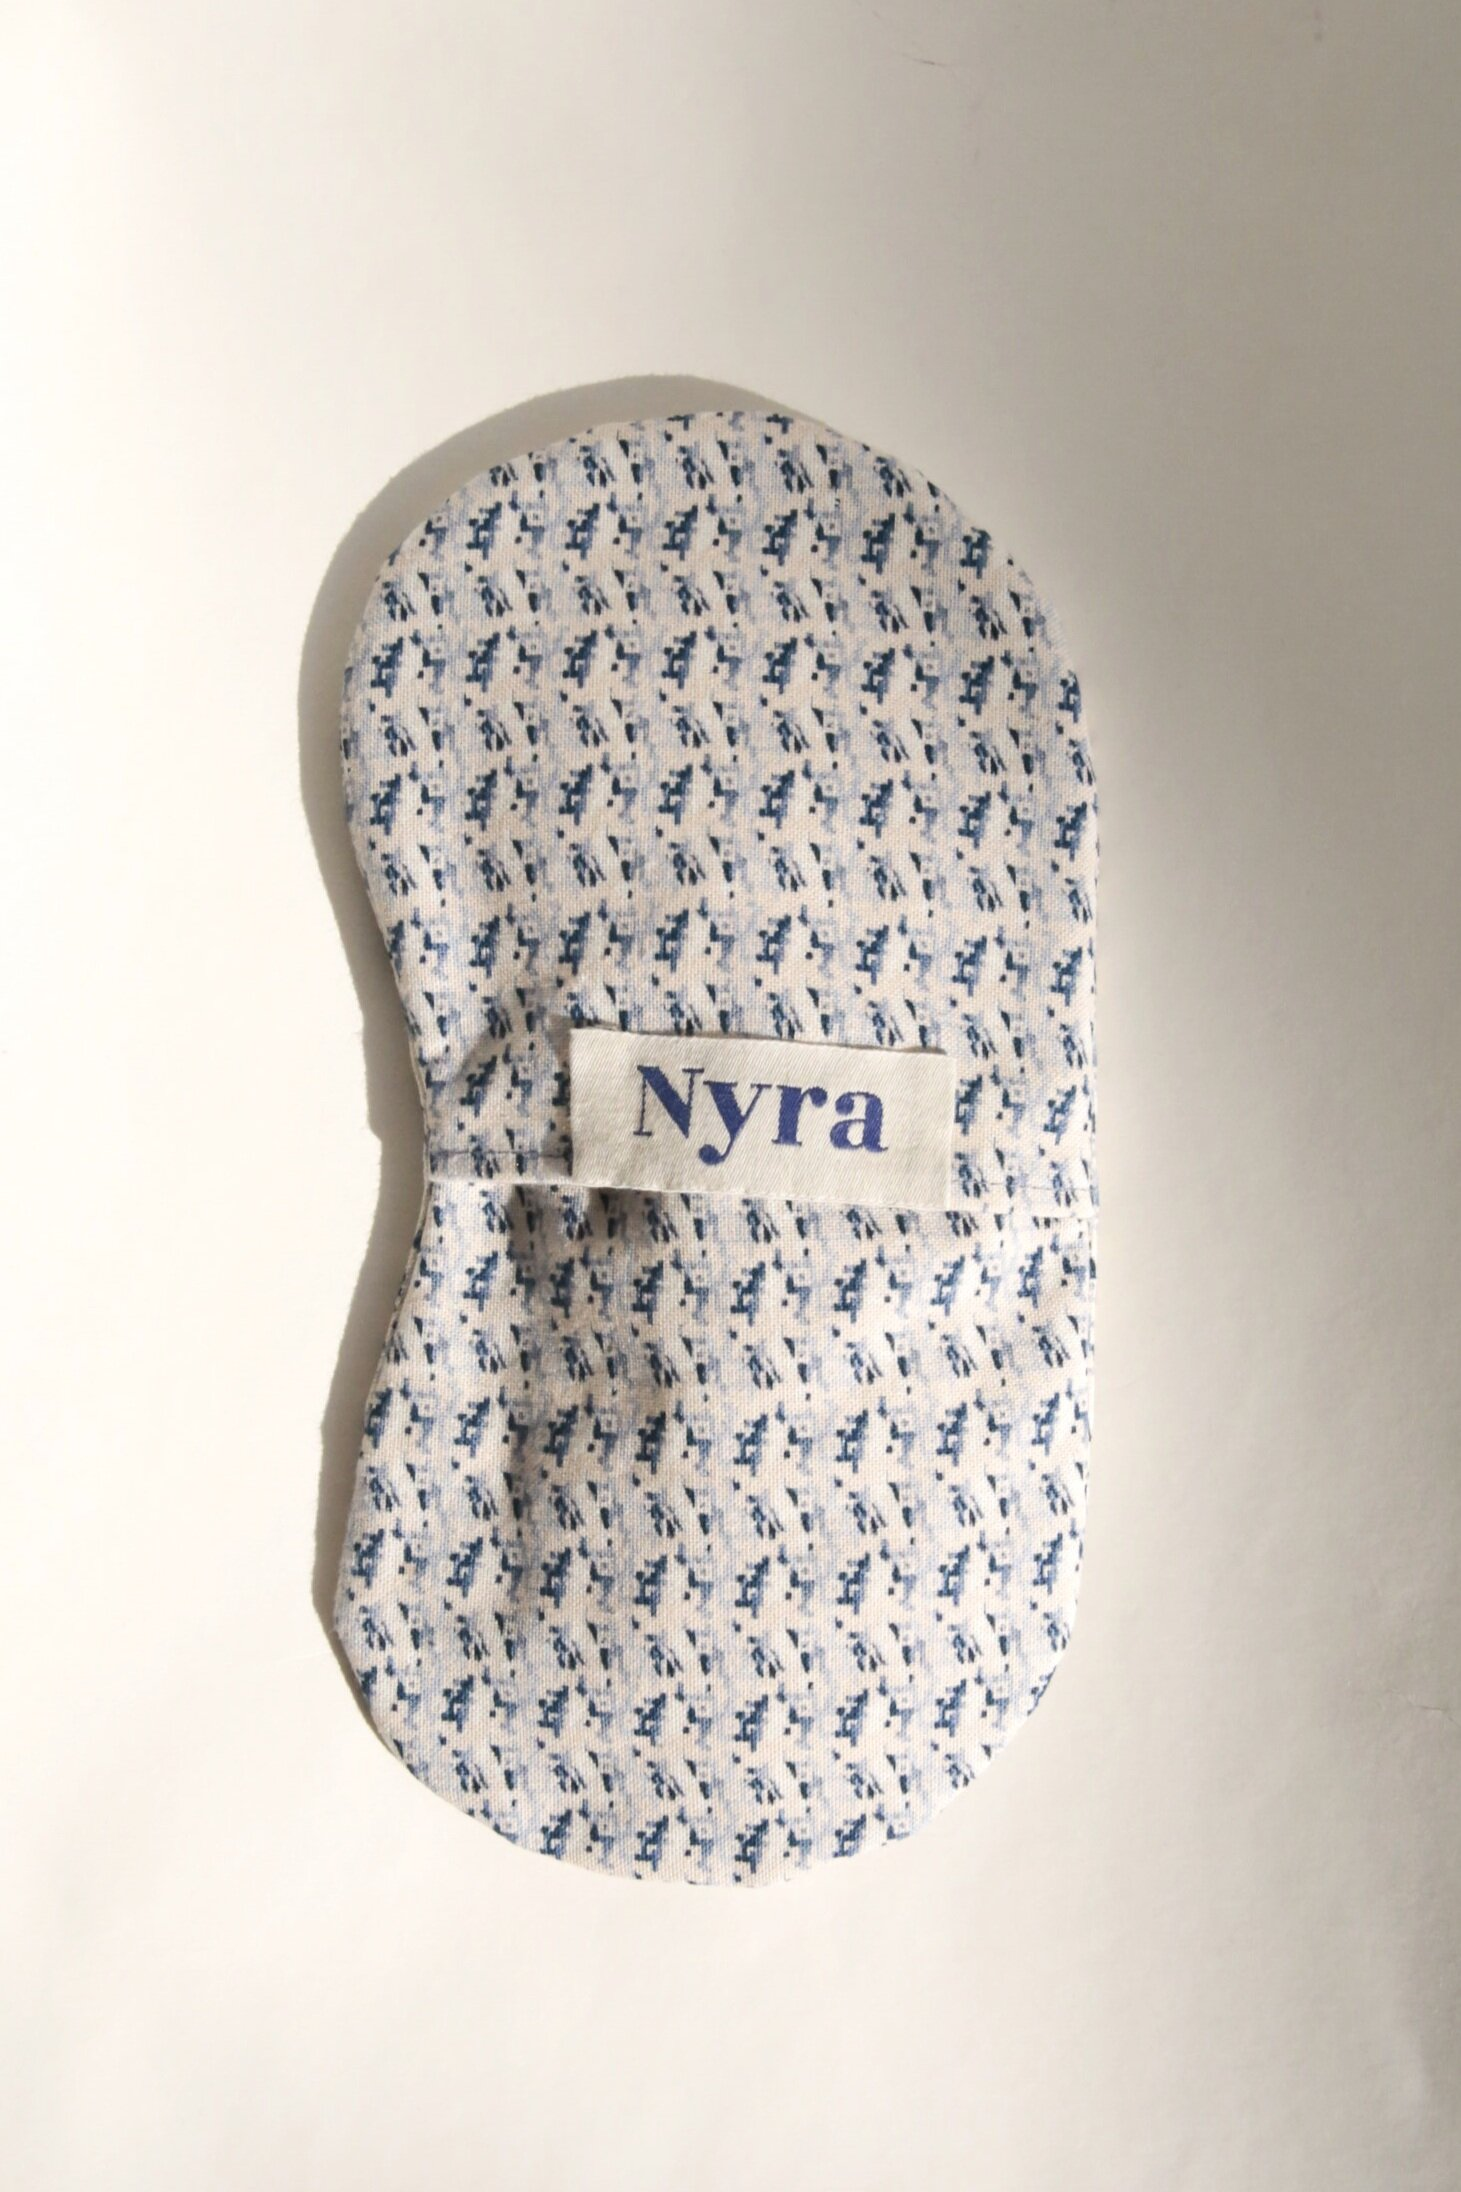 Snu Scent Eye Pillow Mask 01 from Nyra